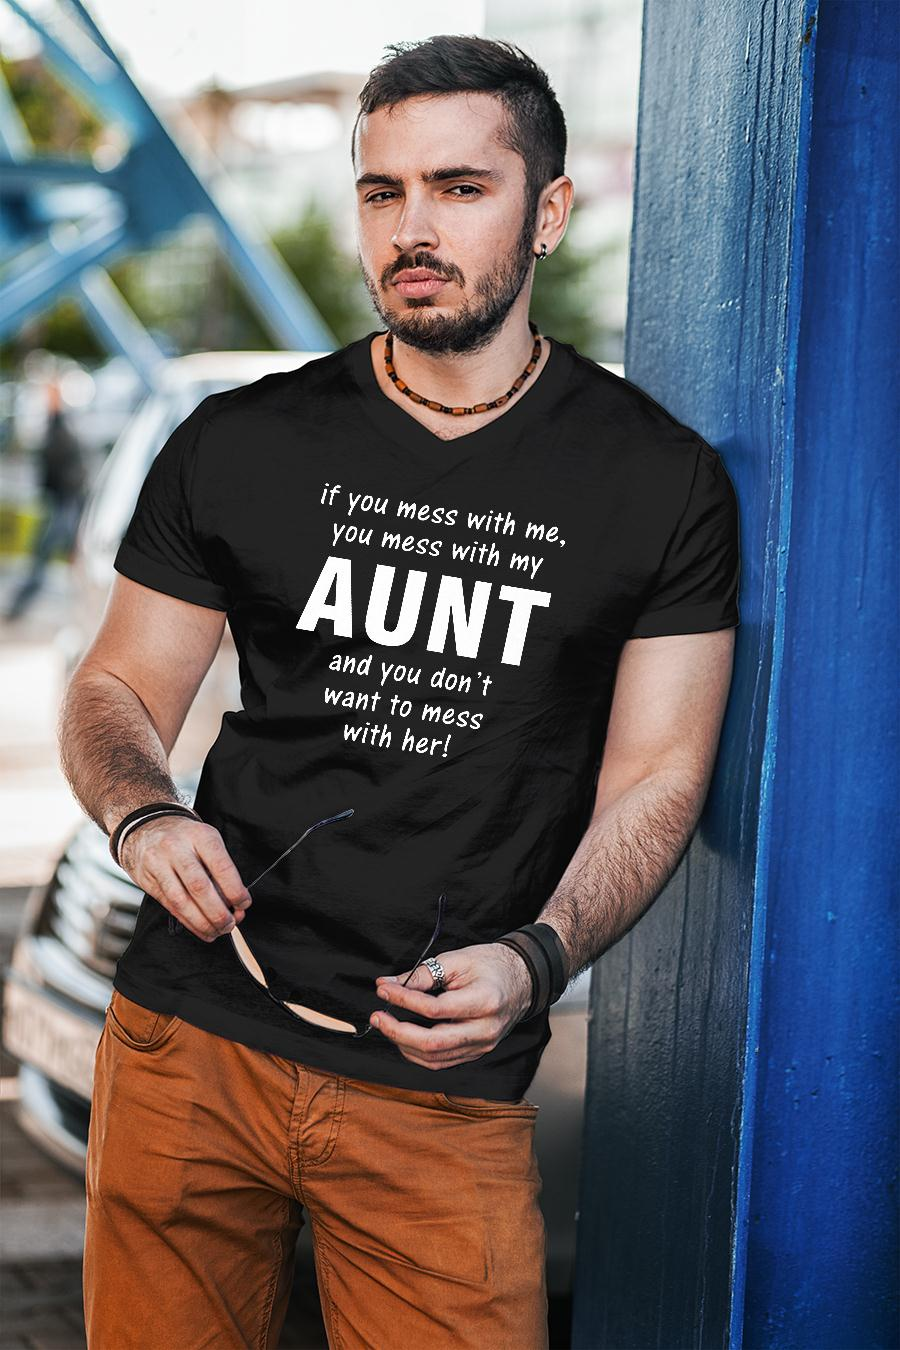 If you mess with me you mess with my aunt and you don't want to mess with her shirt unisex